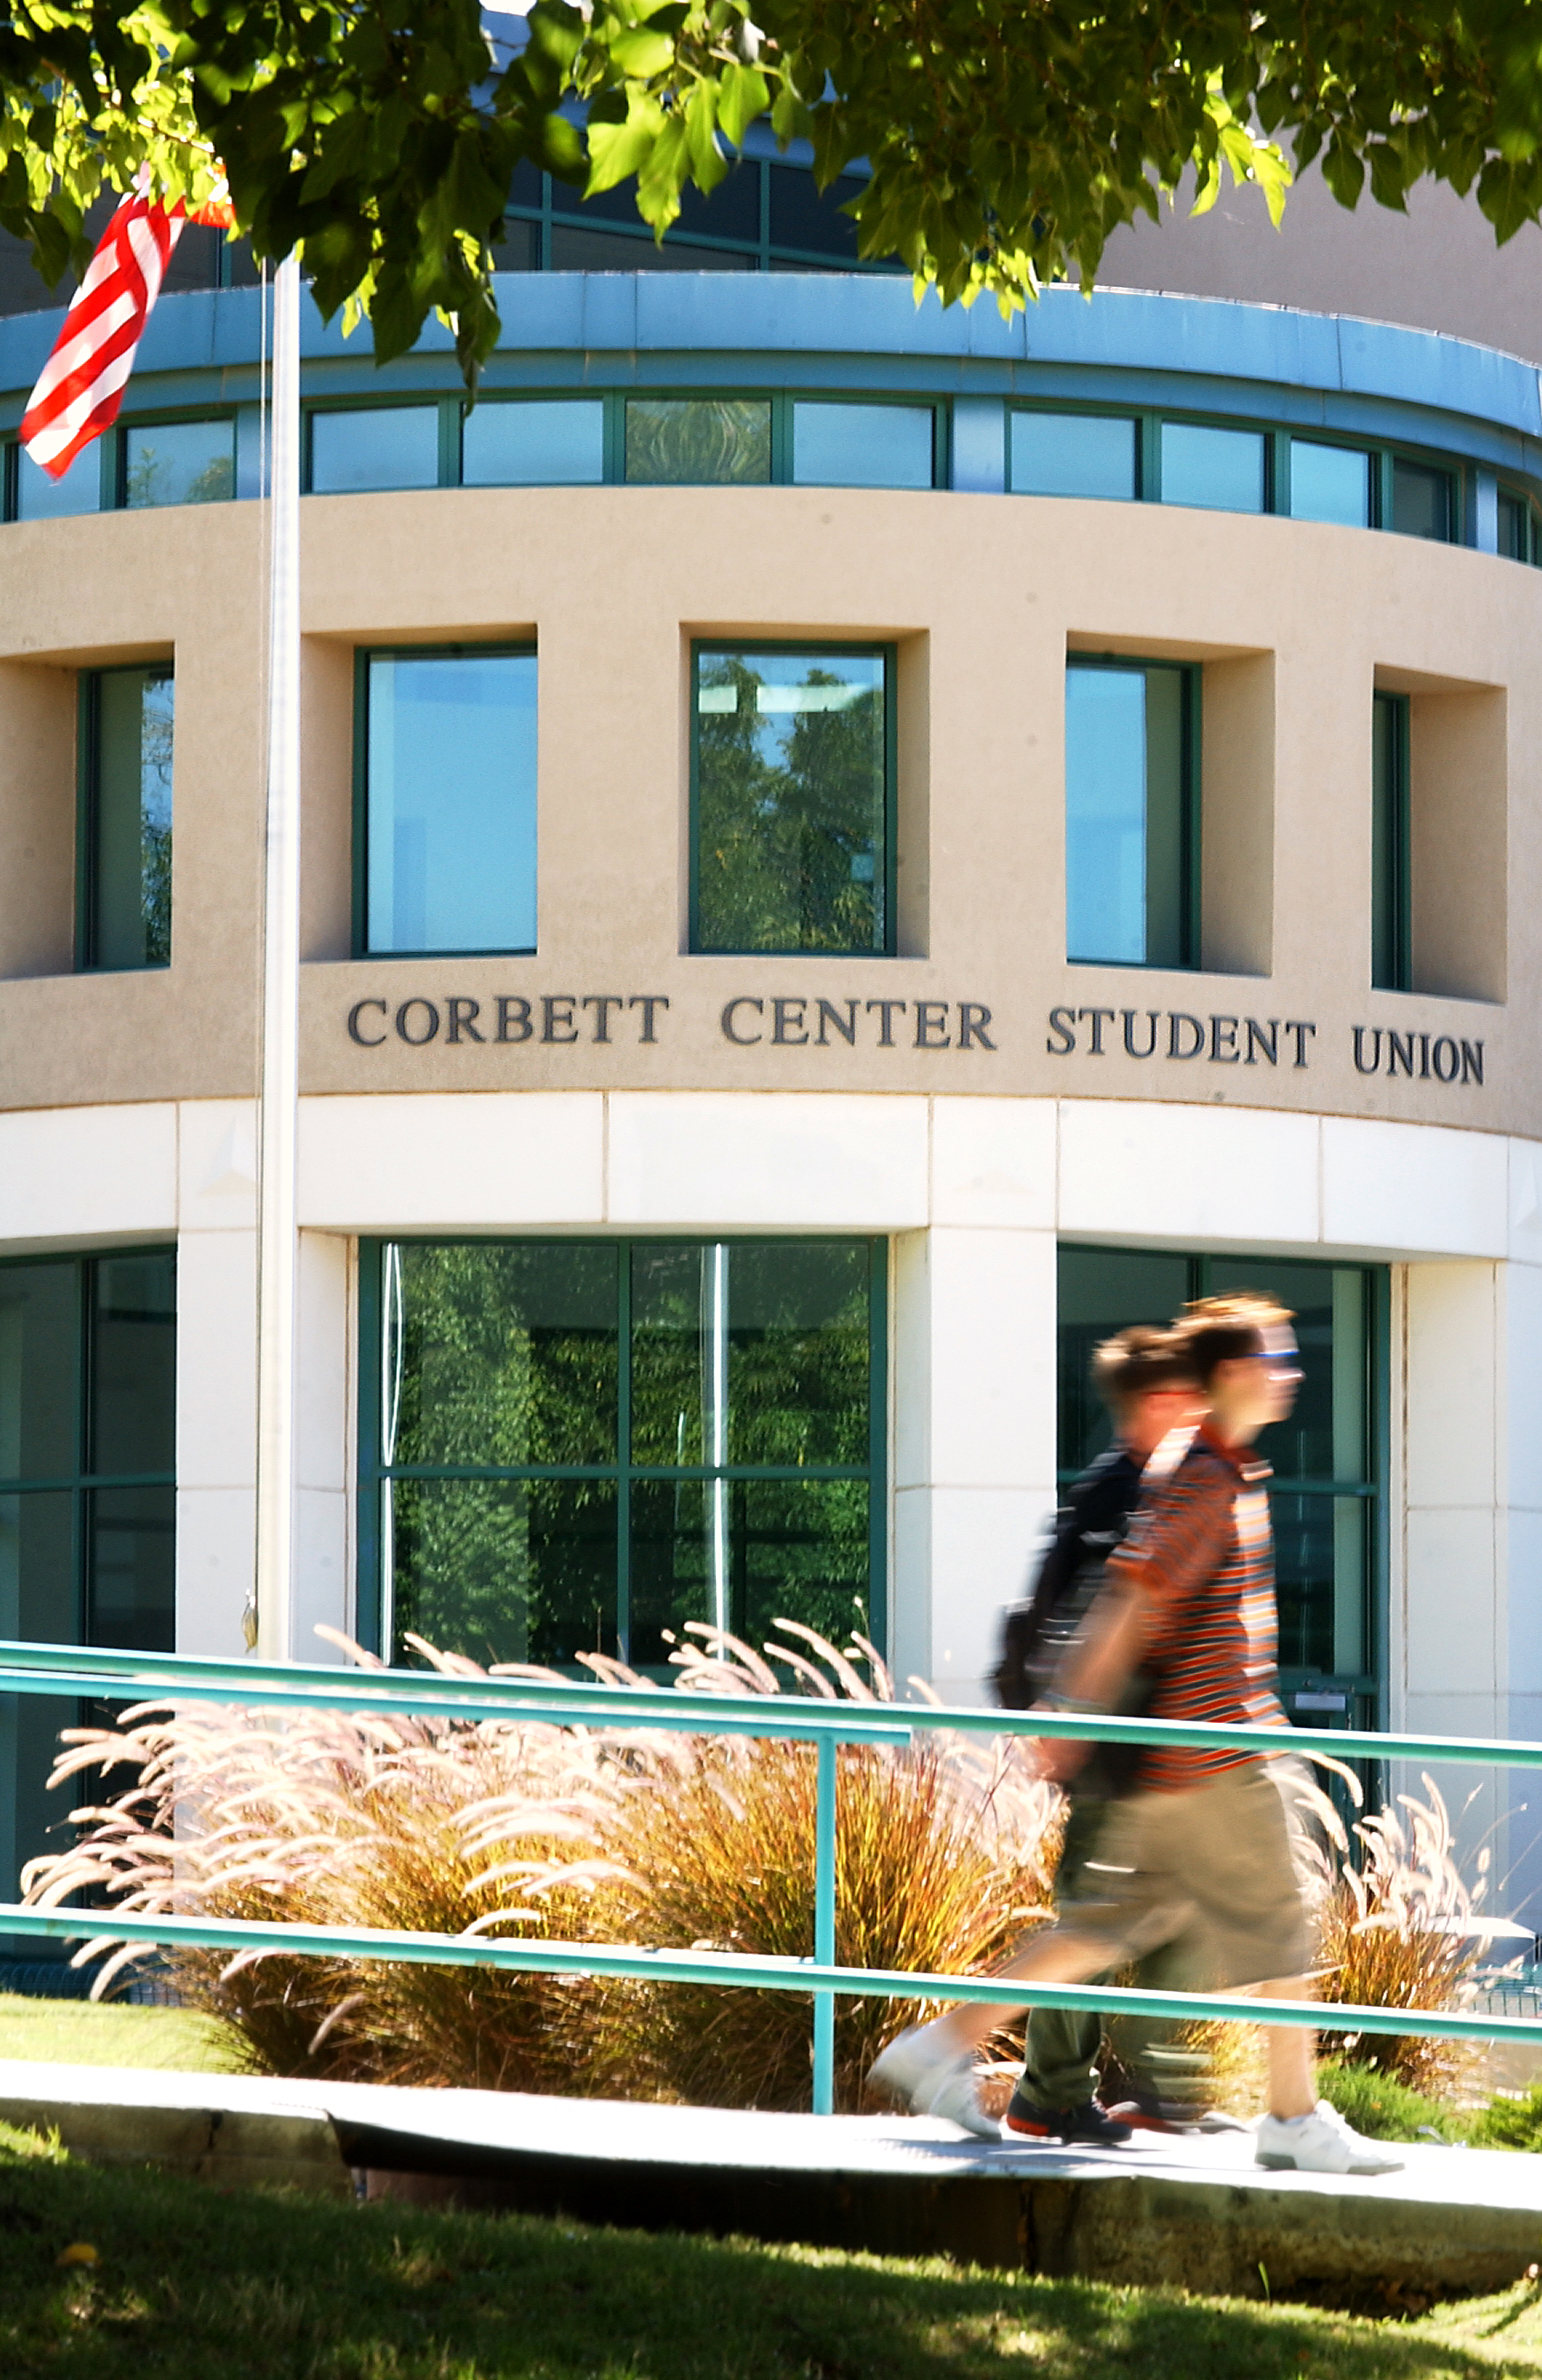 fullres_corbett_center_092502